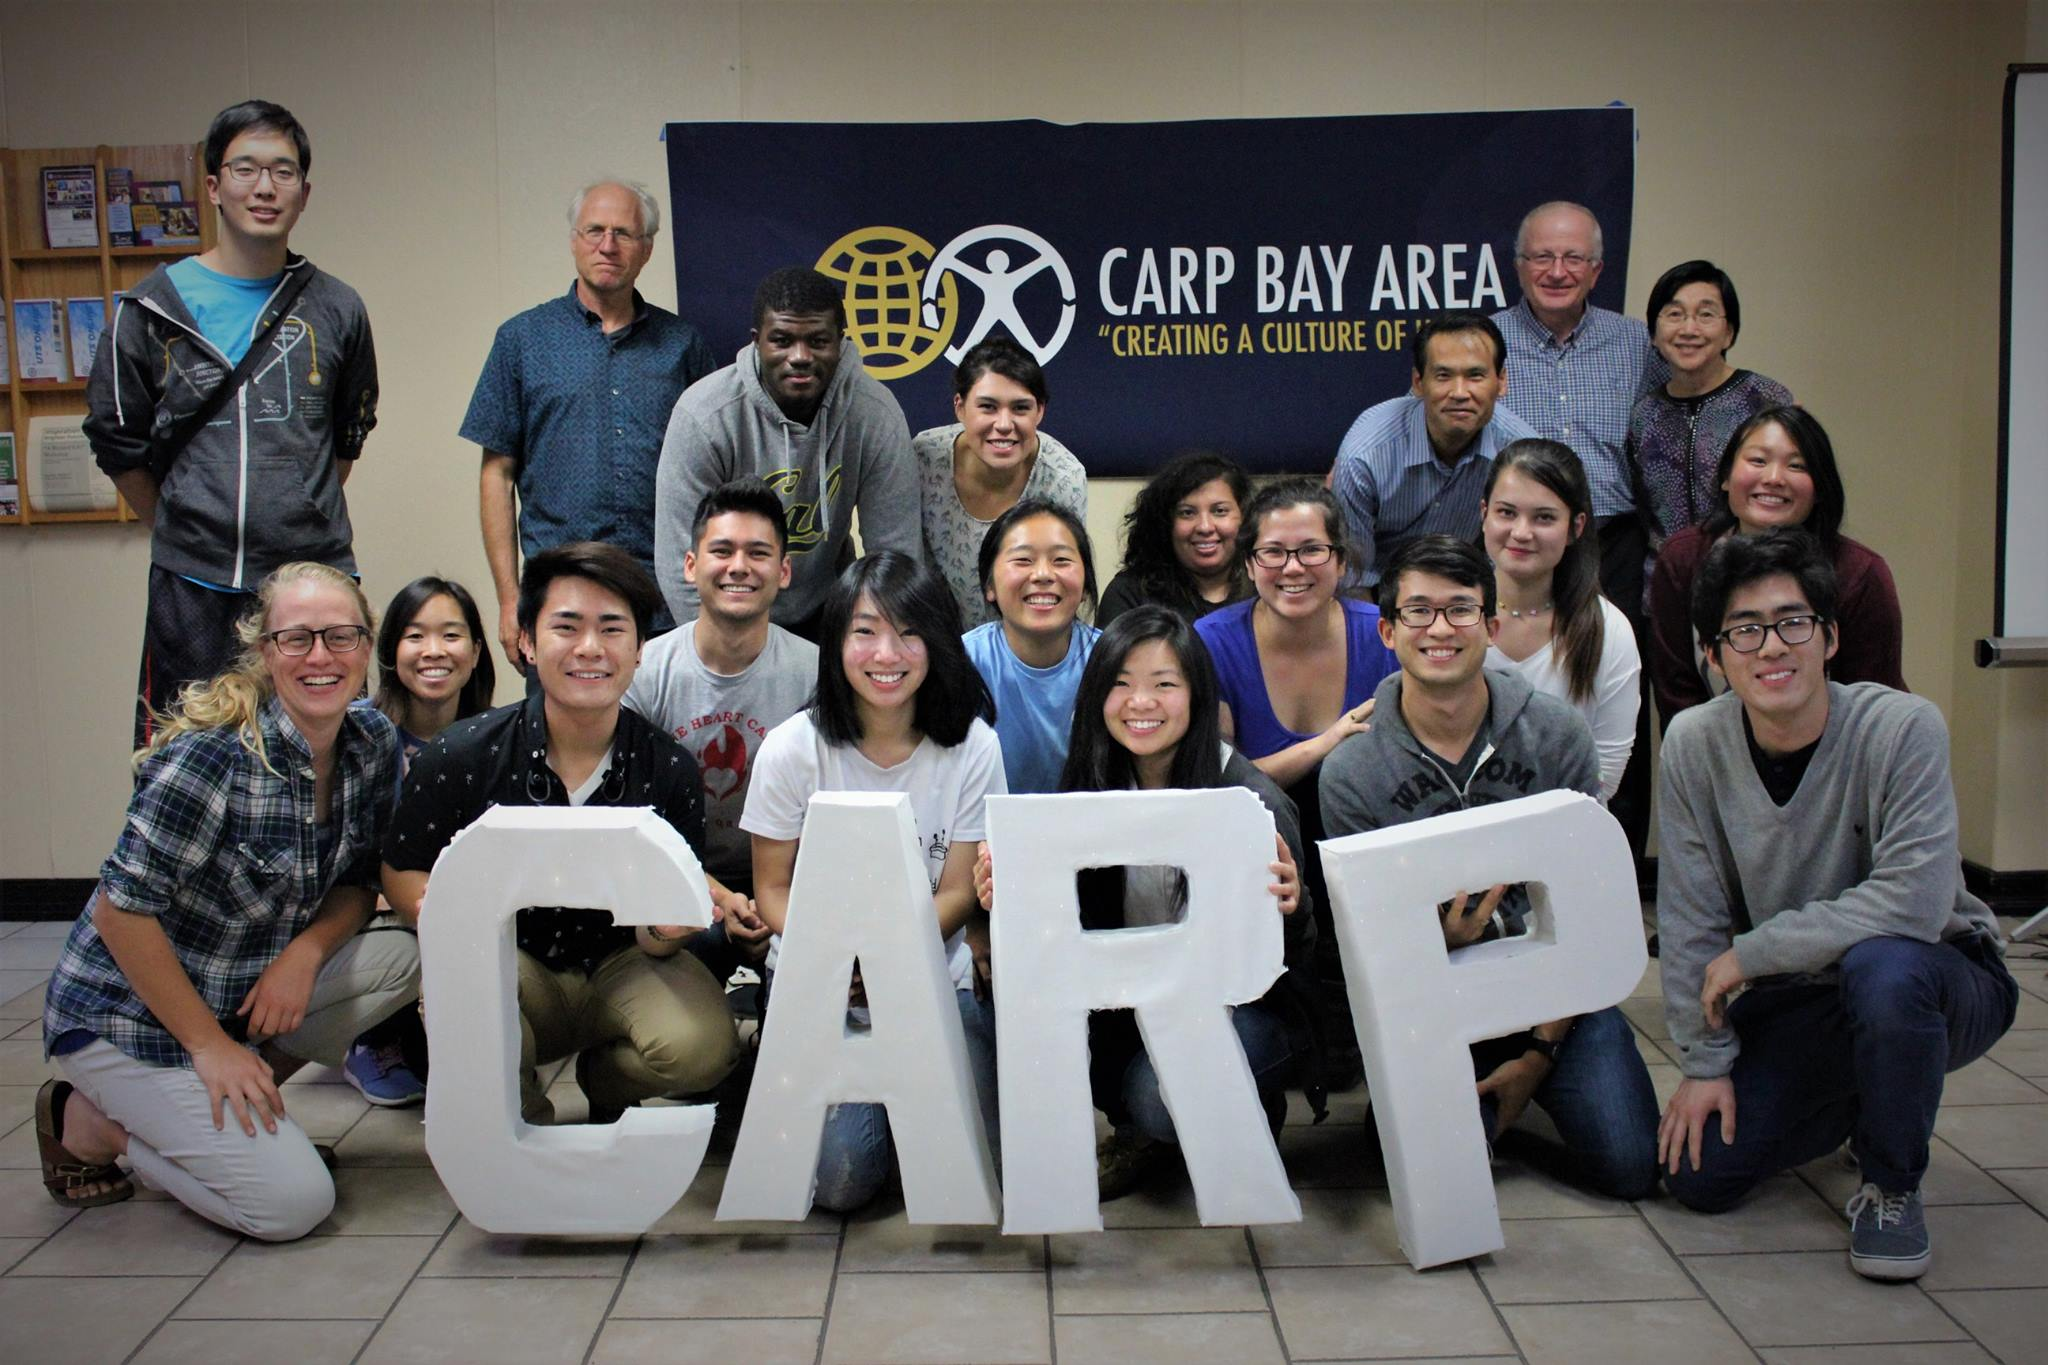 Bay Area CARP at their Ignite program with their community.